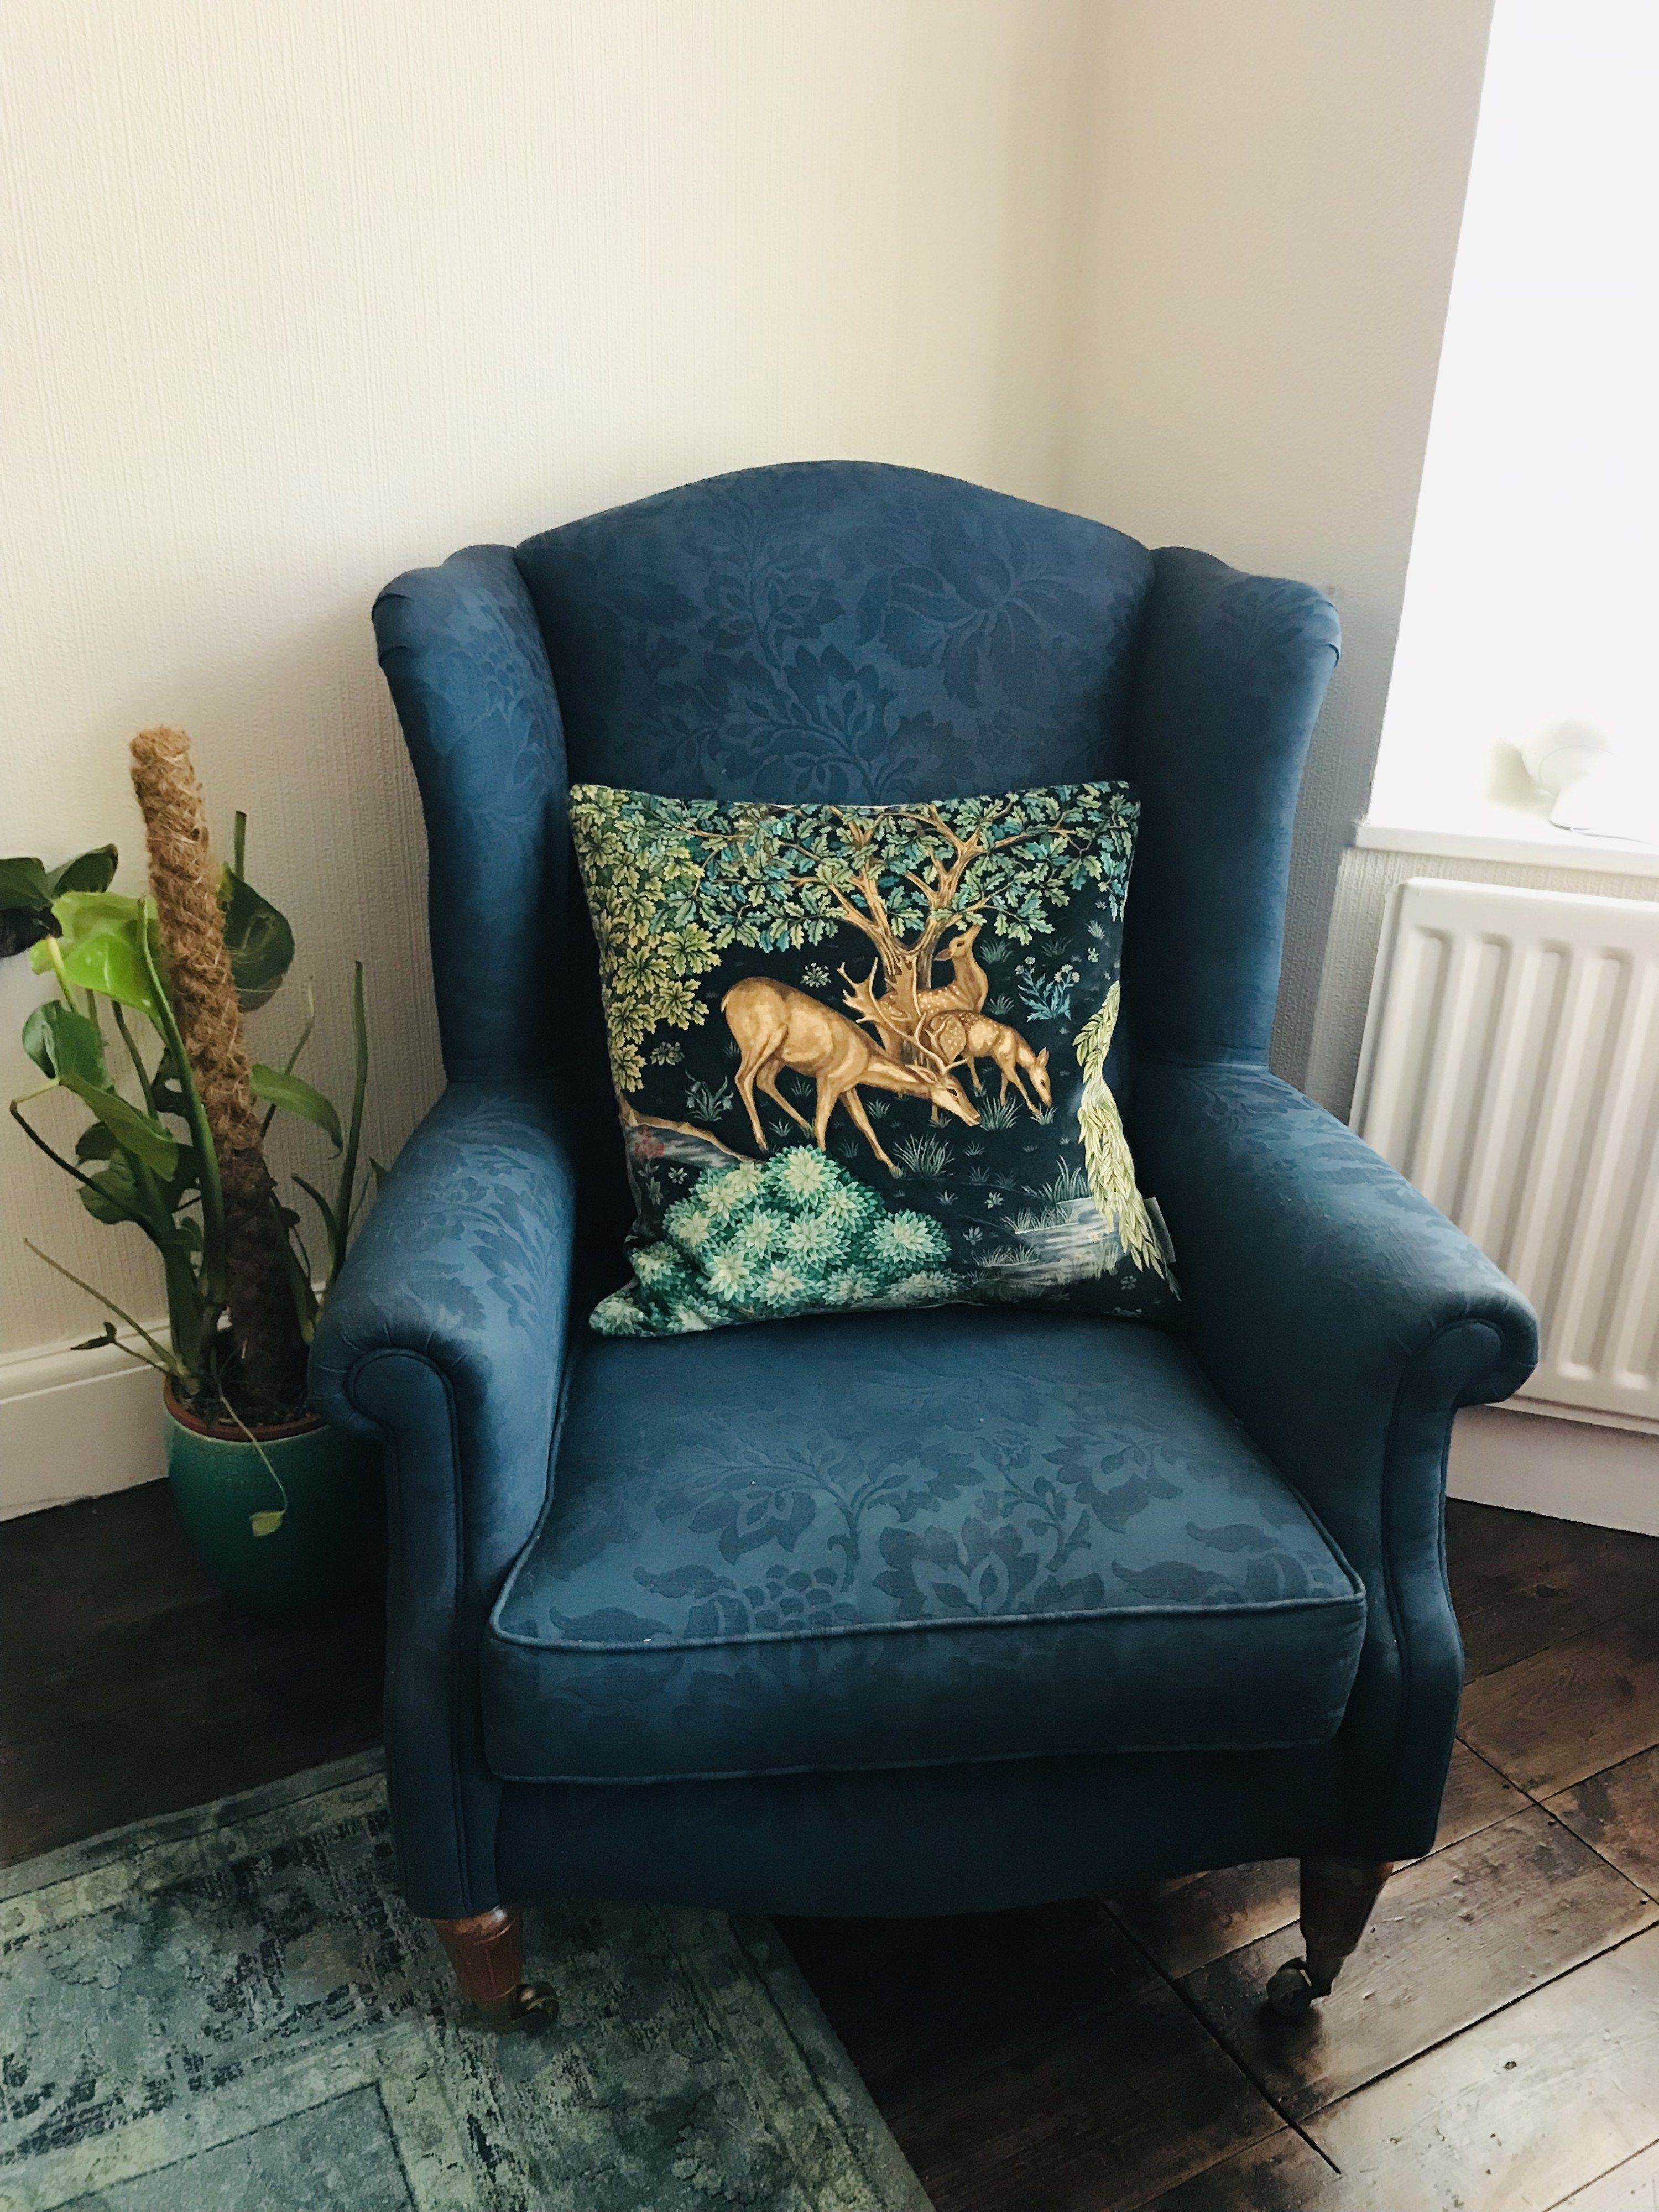 How To Dye A Fabric Chair Or Sofa The Burrow In 2019 Chair Fabric Sofa Makeover Chair